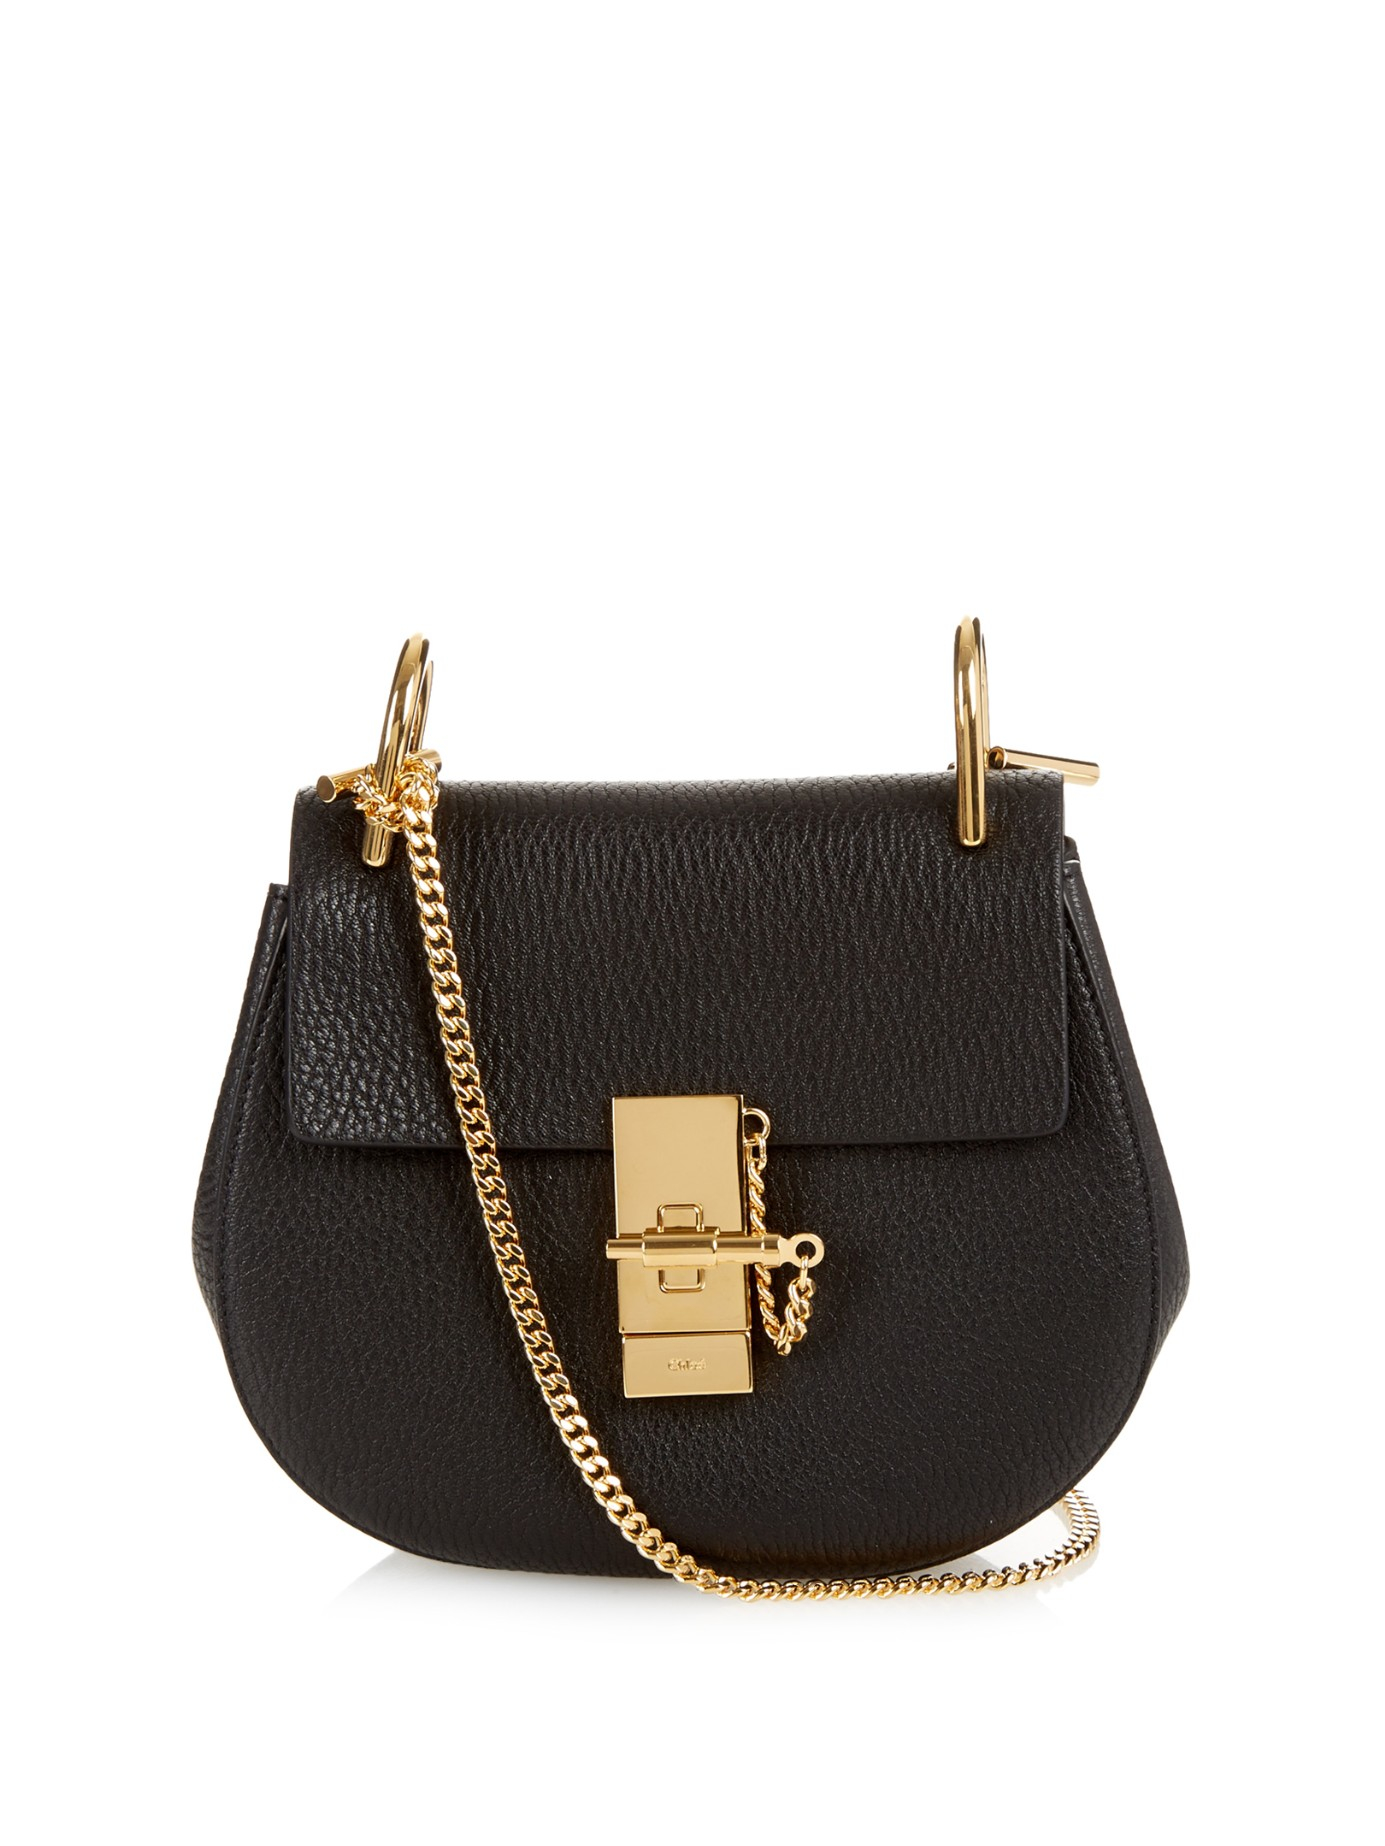 chleo bag - chloe drew mini leather cross-body bag, chloe knockoff bags